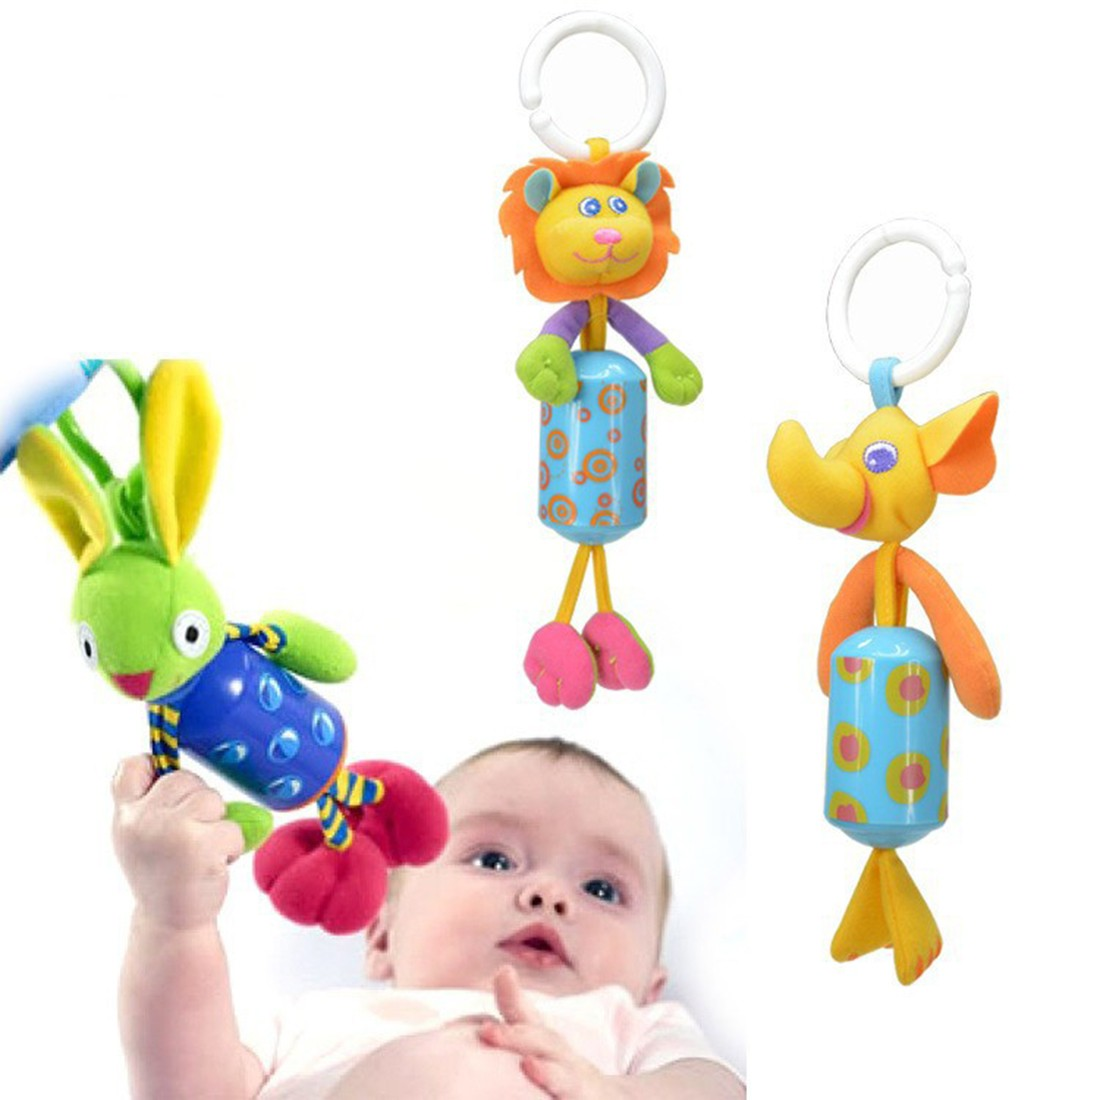 Cute New Infant Toys Mobile Baby Plush Toy Bed Wind Chimes Rattles Bell Toy Stroller for Newborn